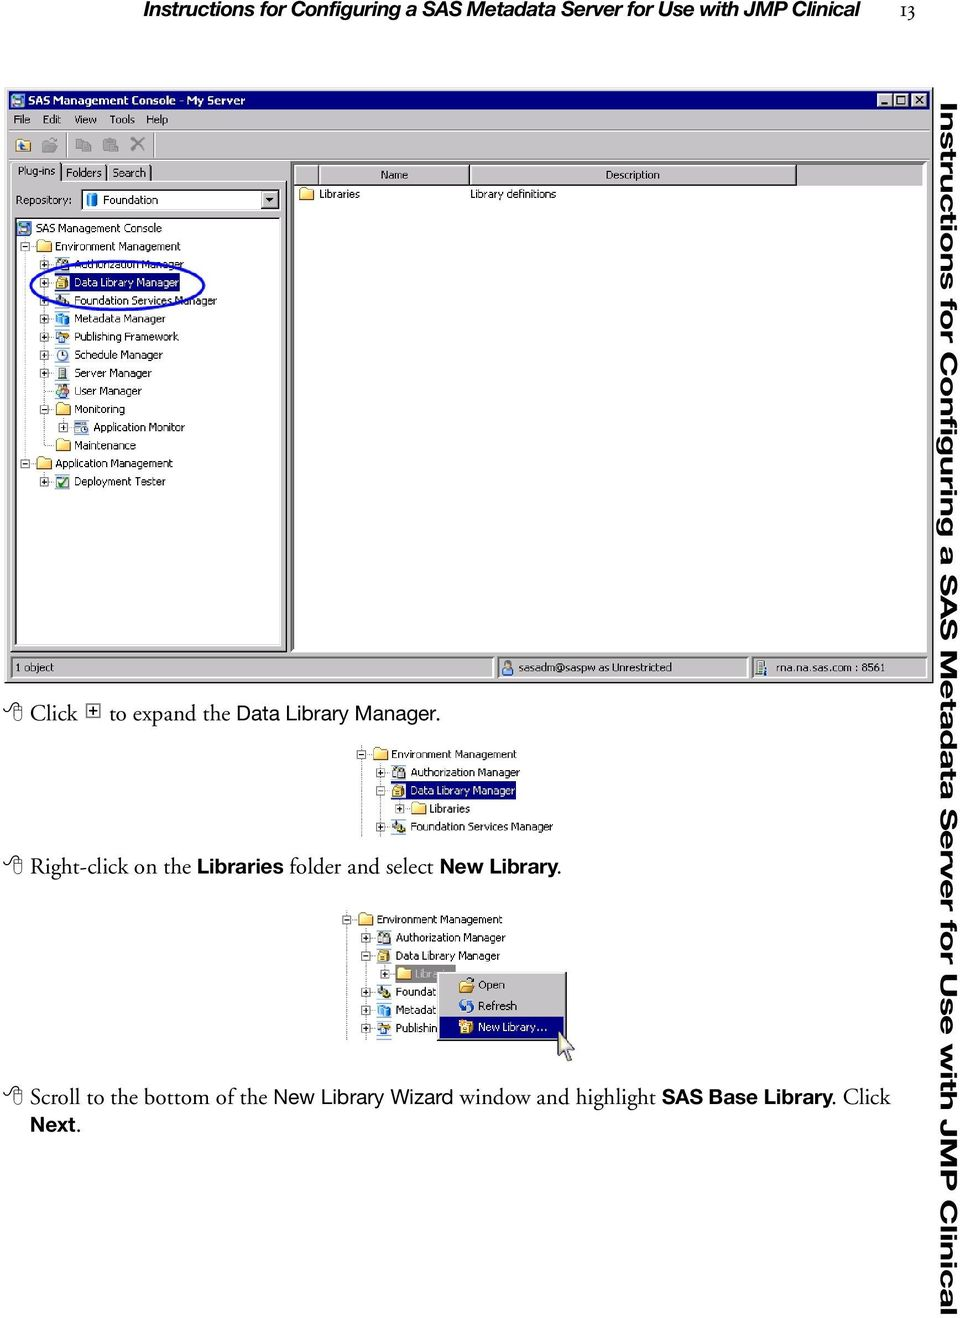 Right-click on the Libraries folder and select New Library.